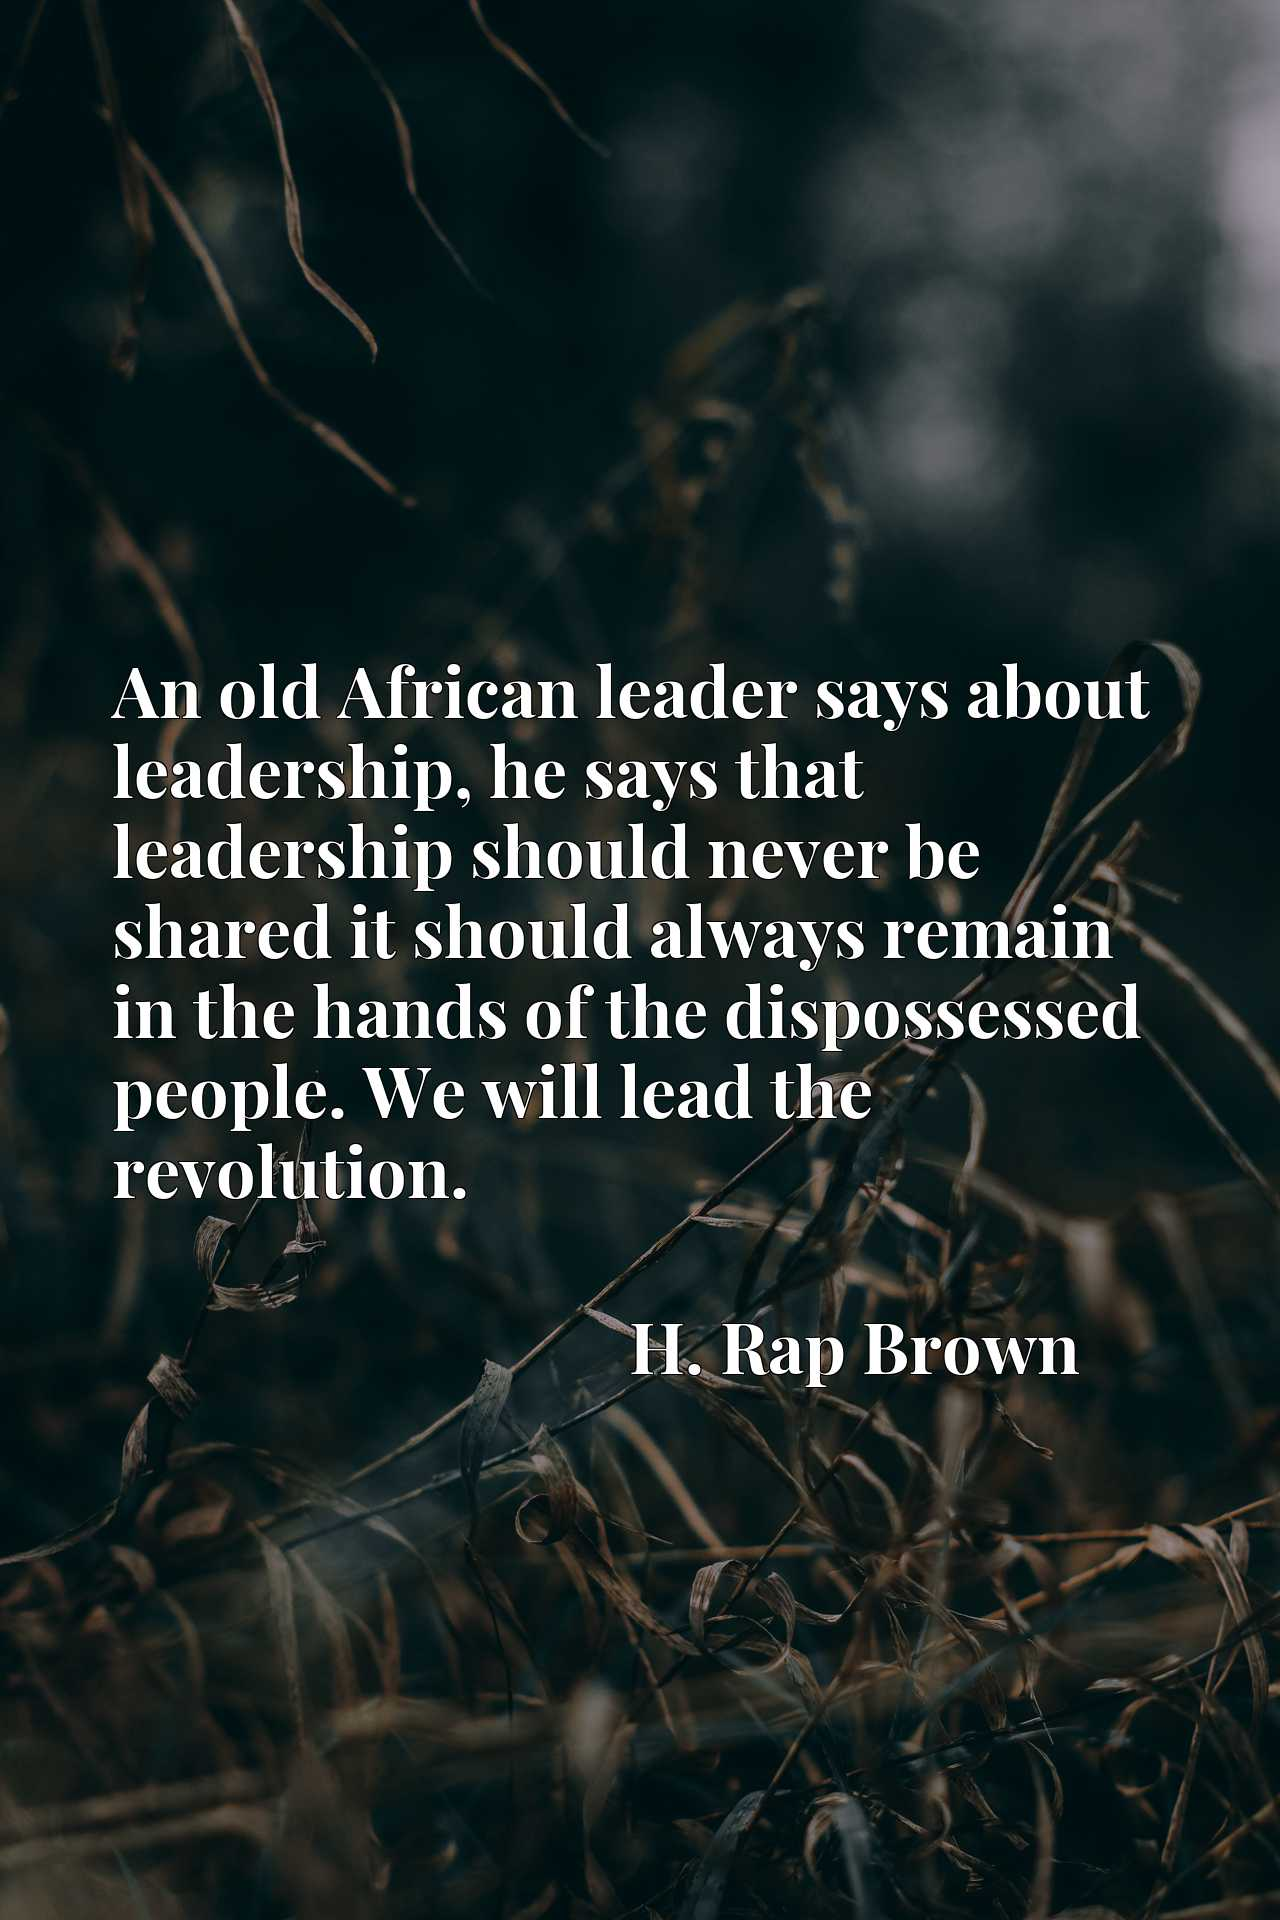 An old African leader says about leadership, he says that leadership should never be shared it should always remain in the hands of the dispossessed people. We will lead the revolution.